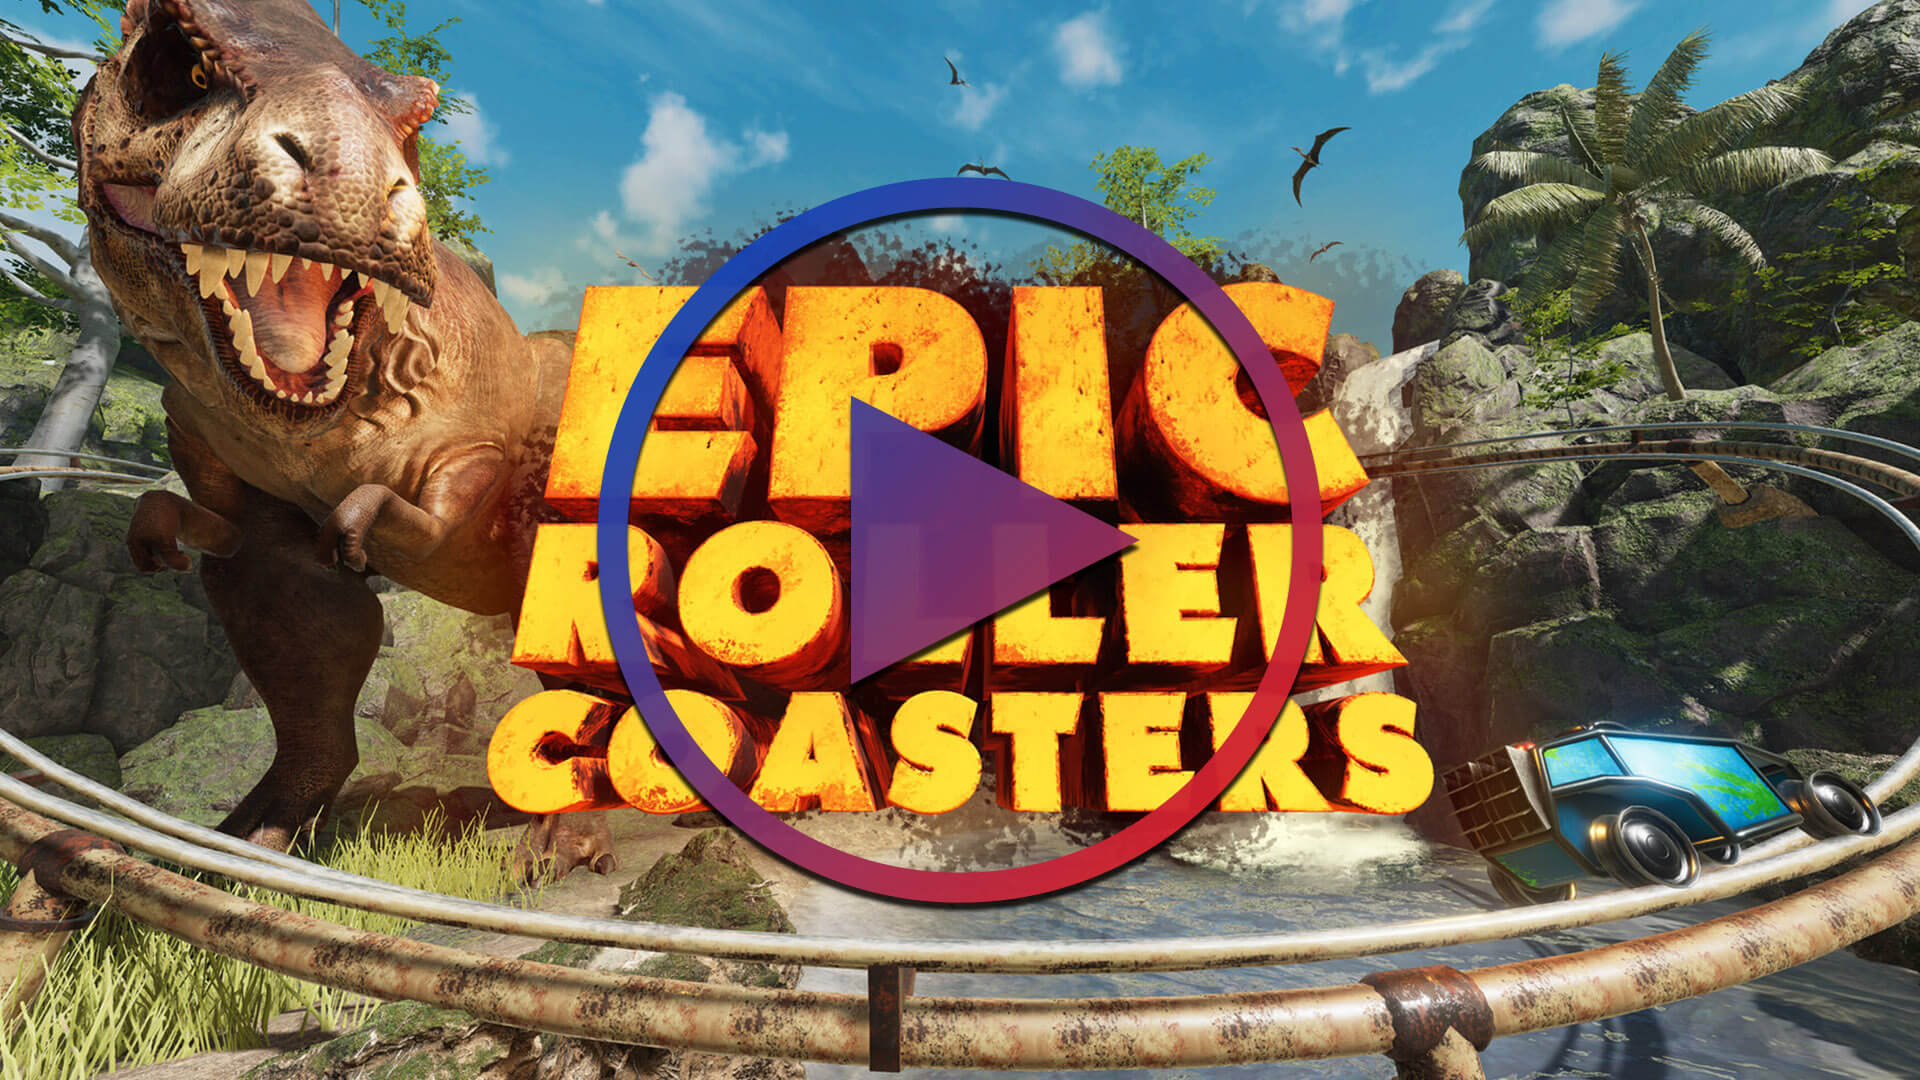 Epic Roller Coasters Trailer